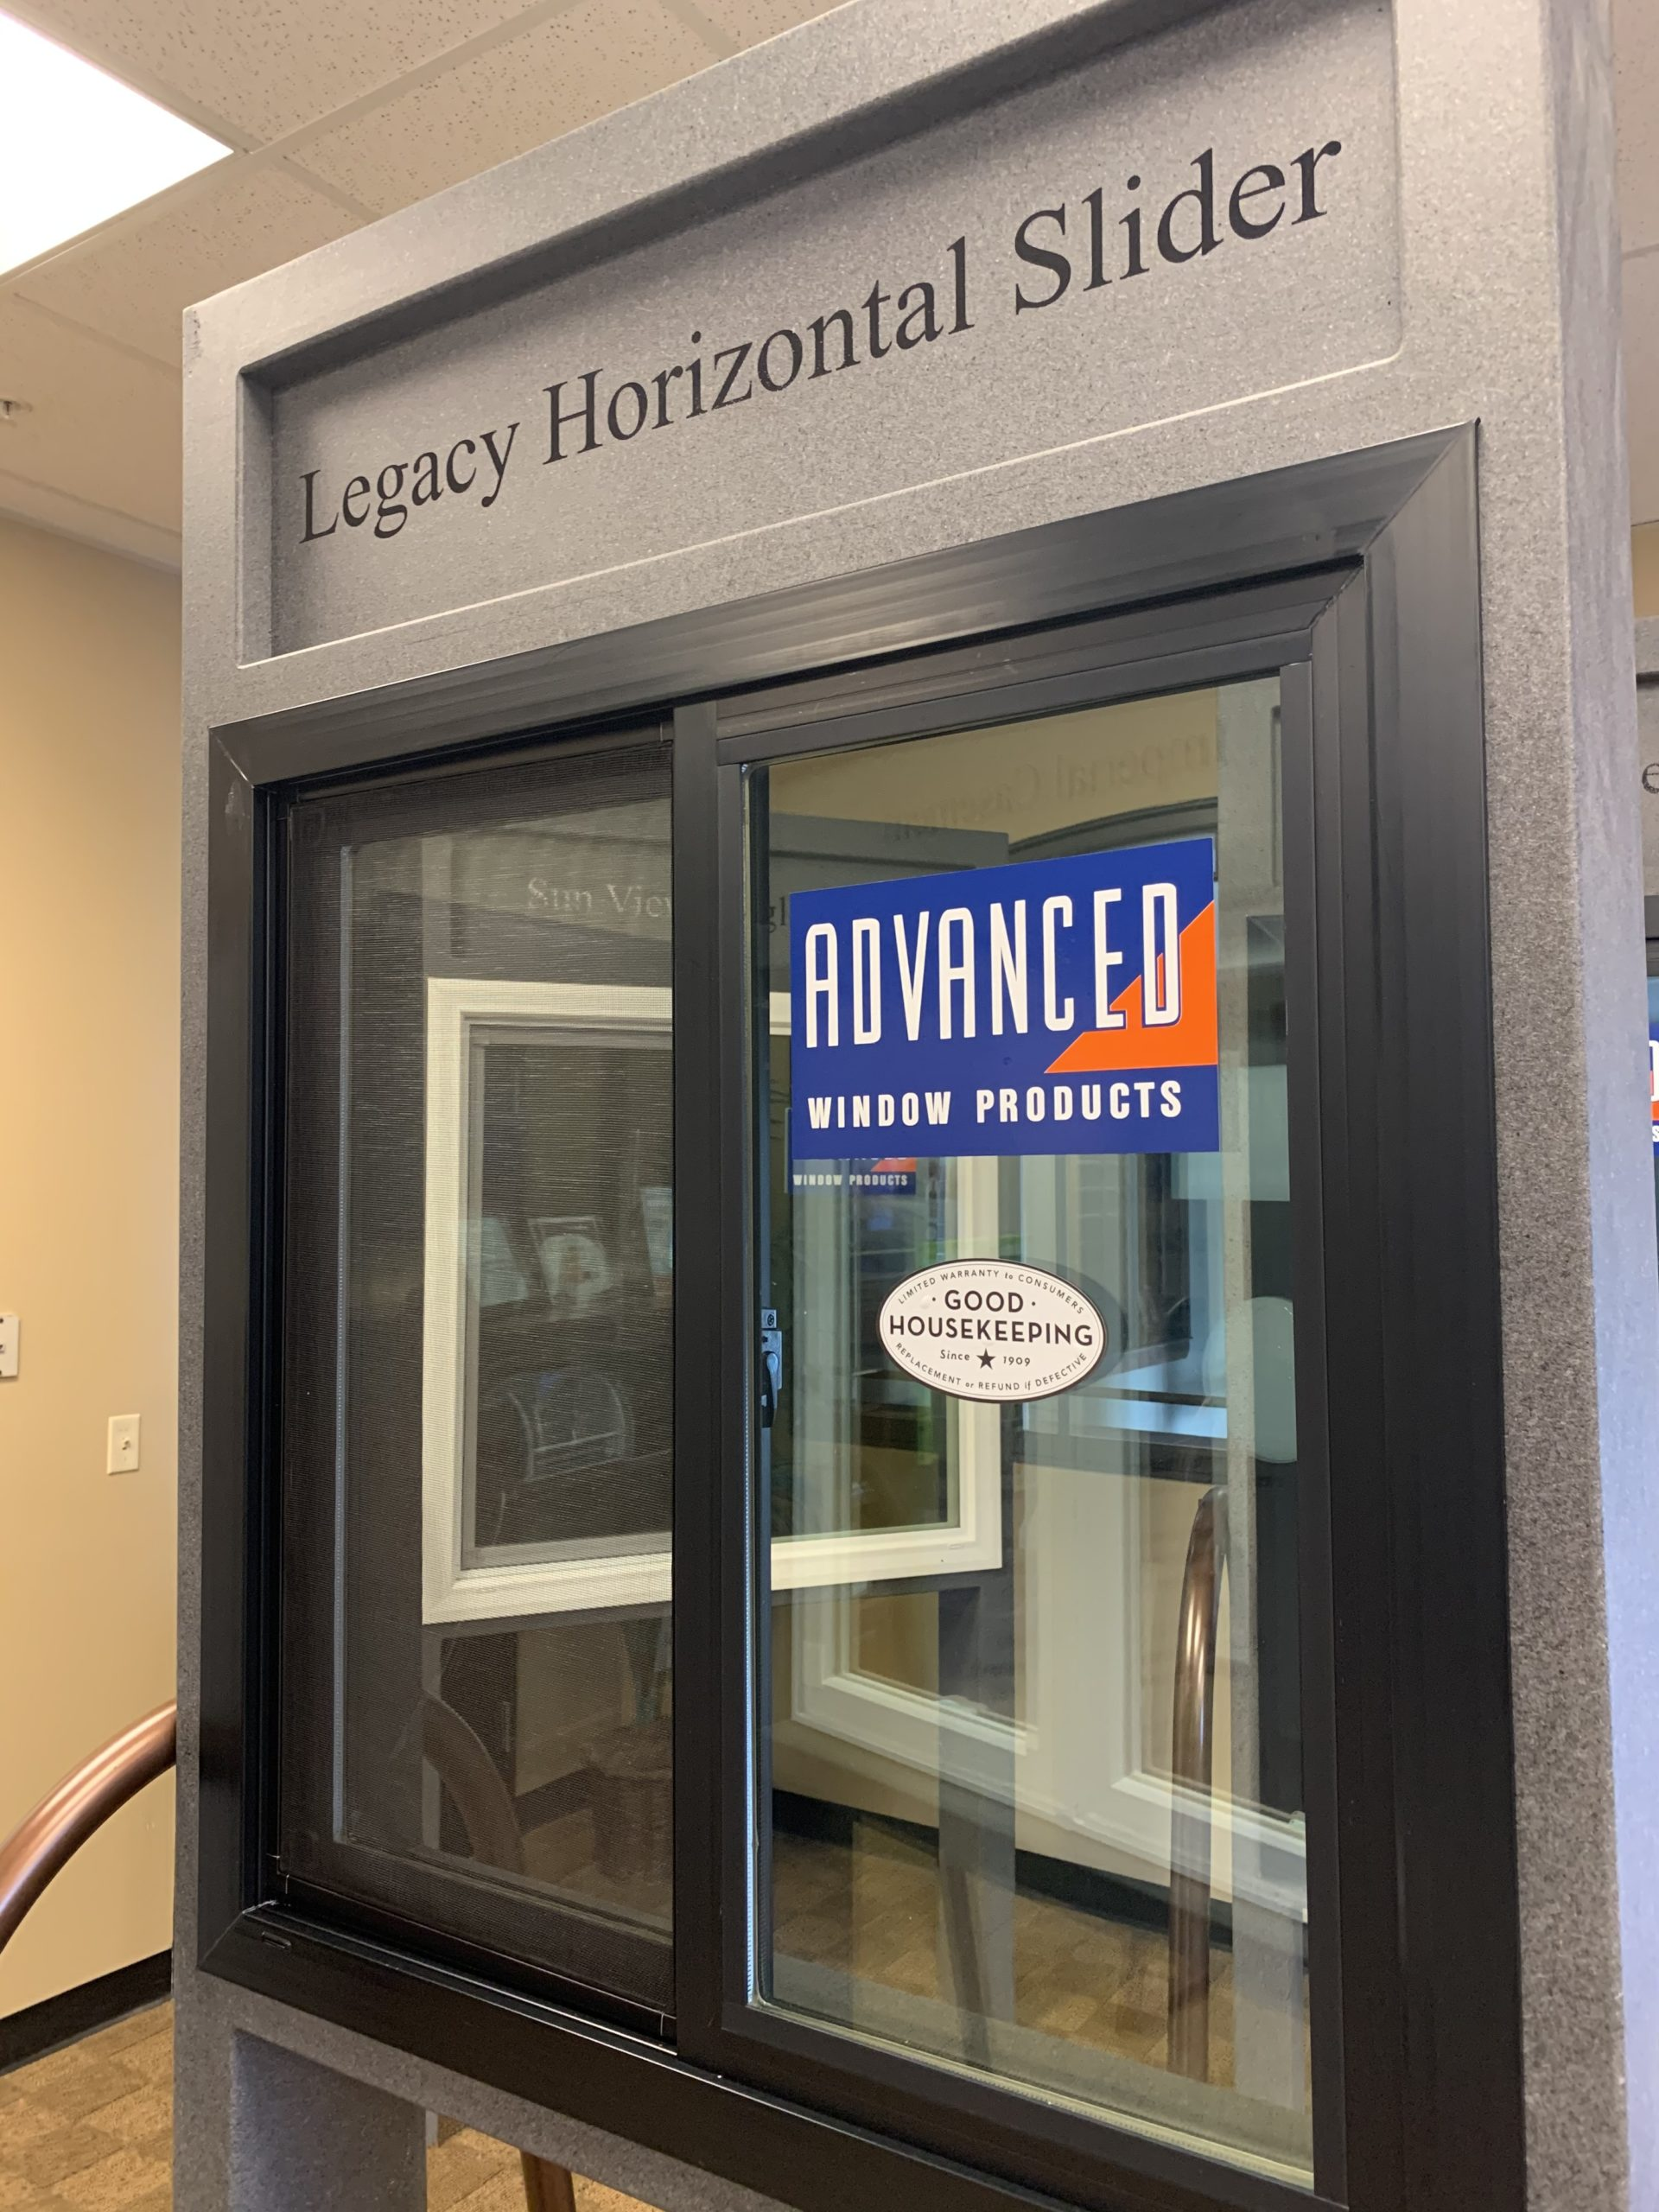 Horizontal Sliding Window Front- Legacy Series Energy Efficient Black Windows in Utah- Advanced Window Products